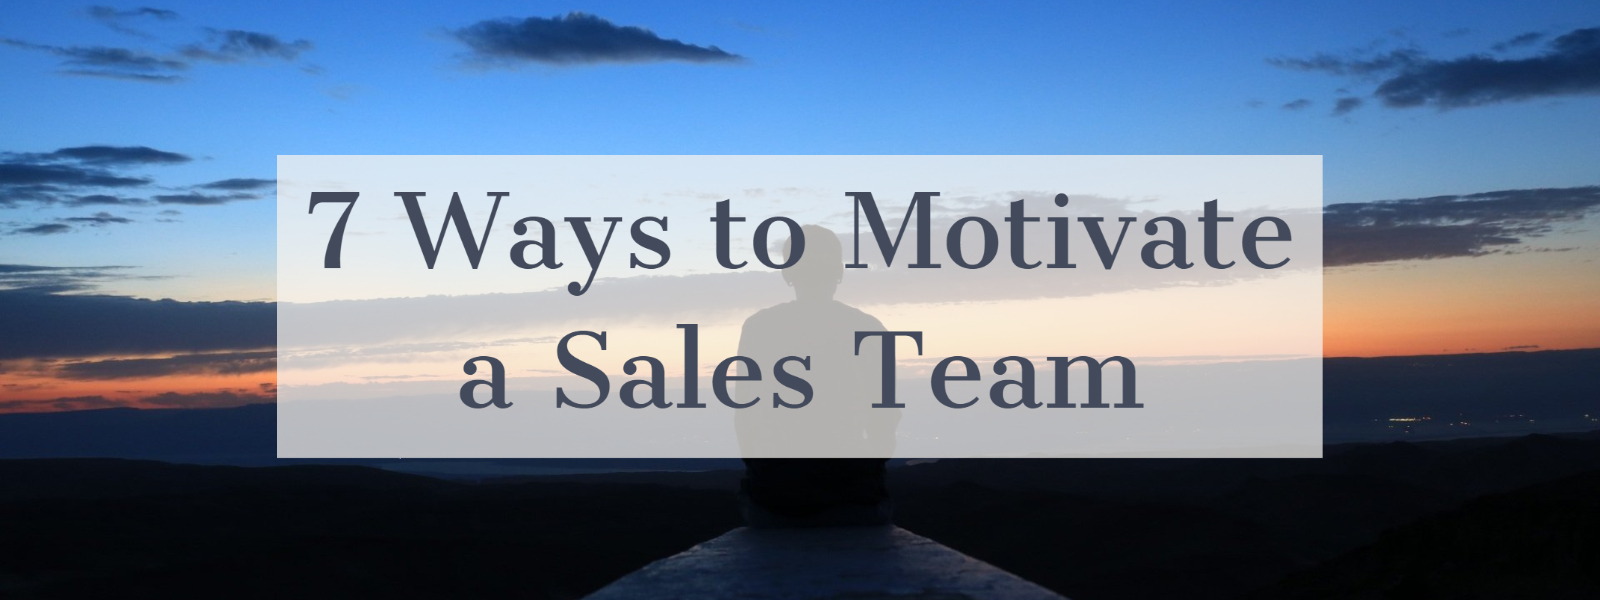 7 Ways to Motivate a Sales Team